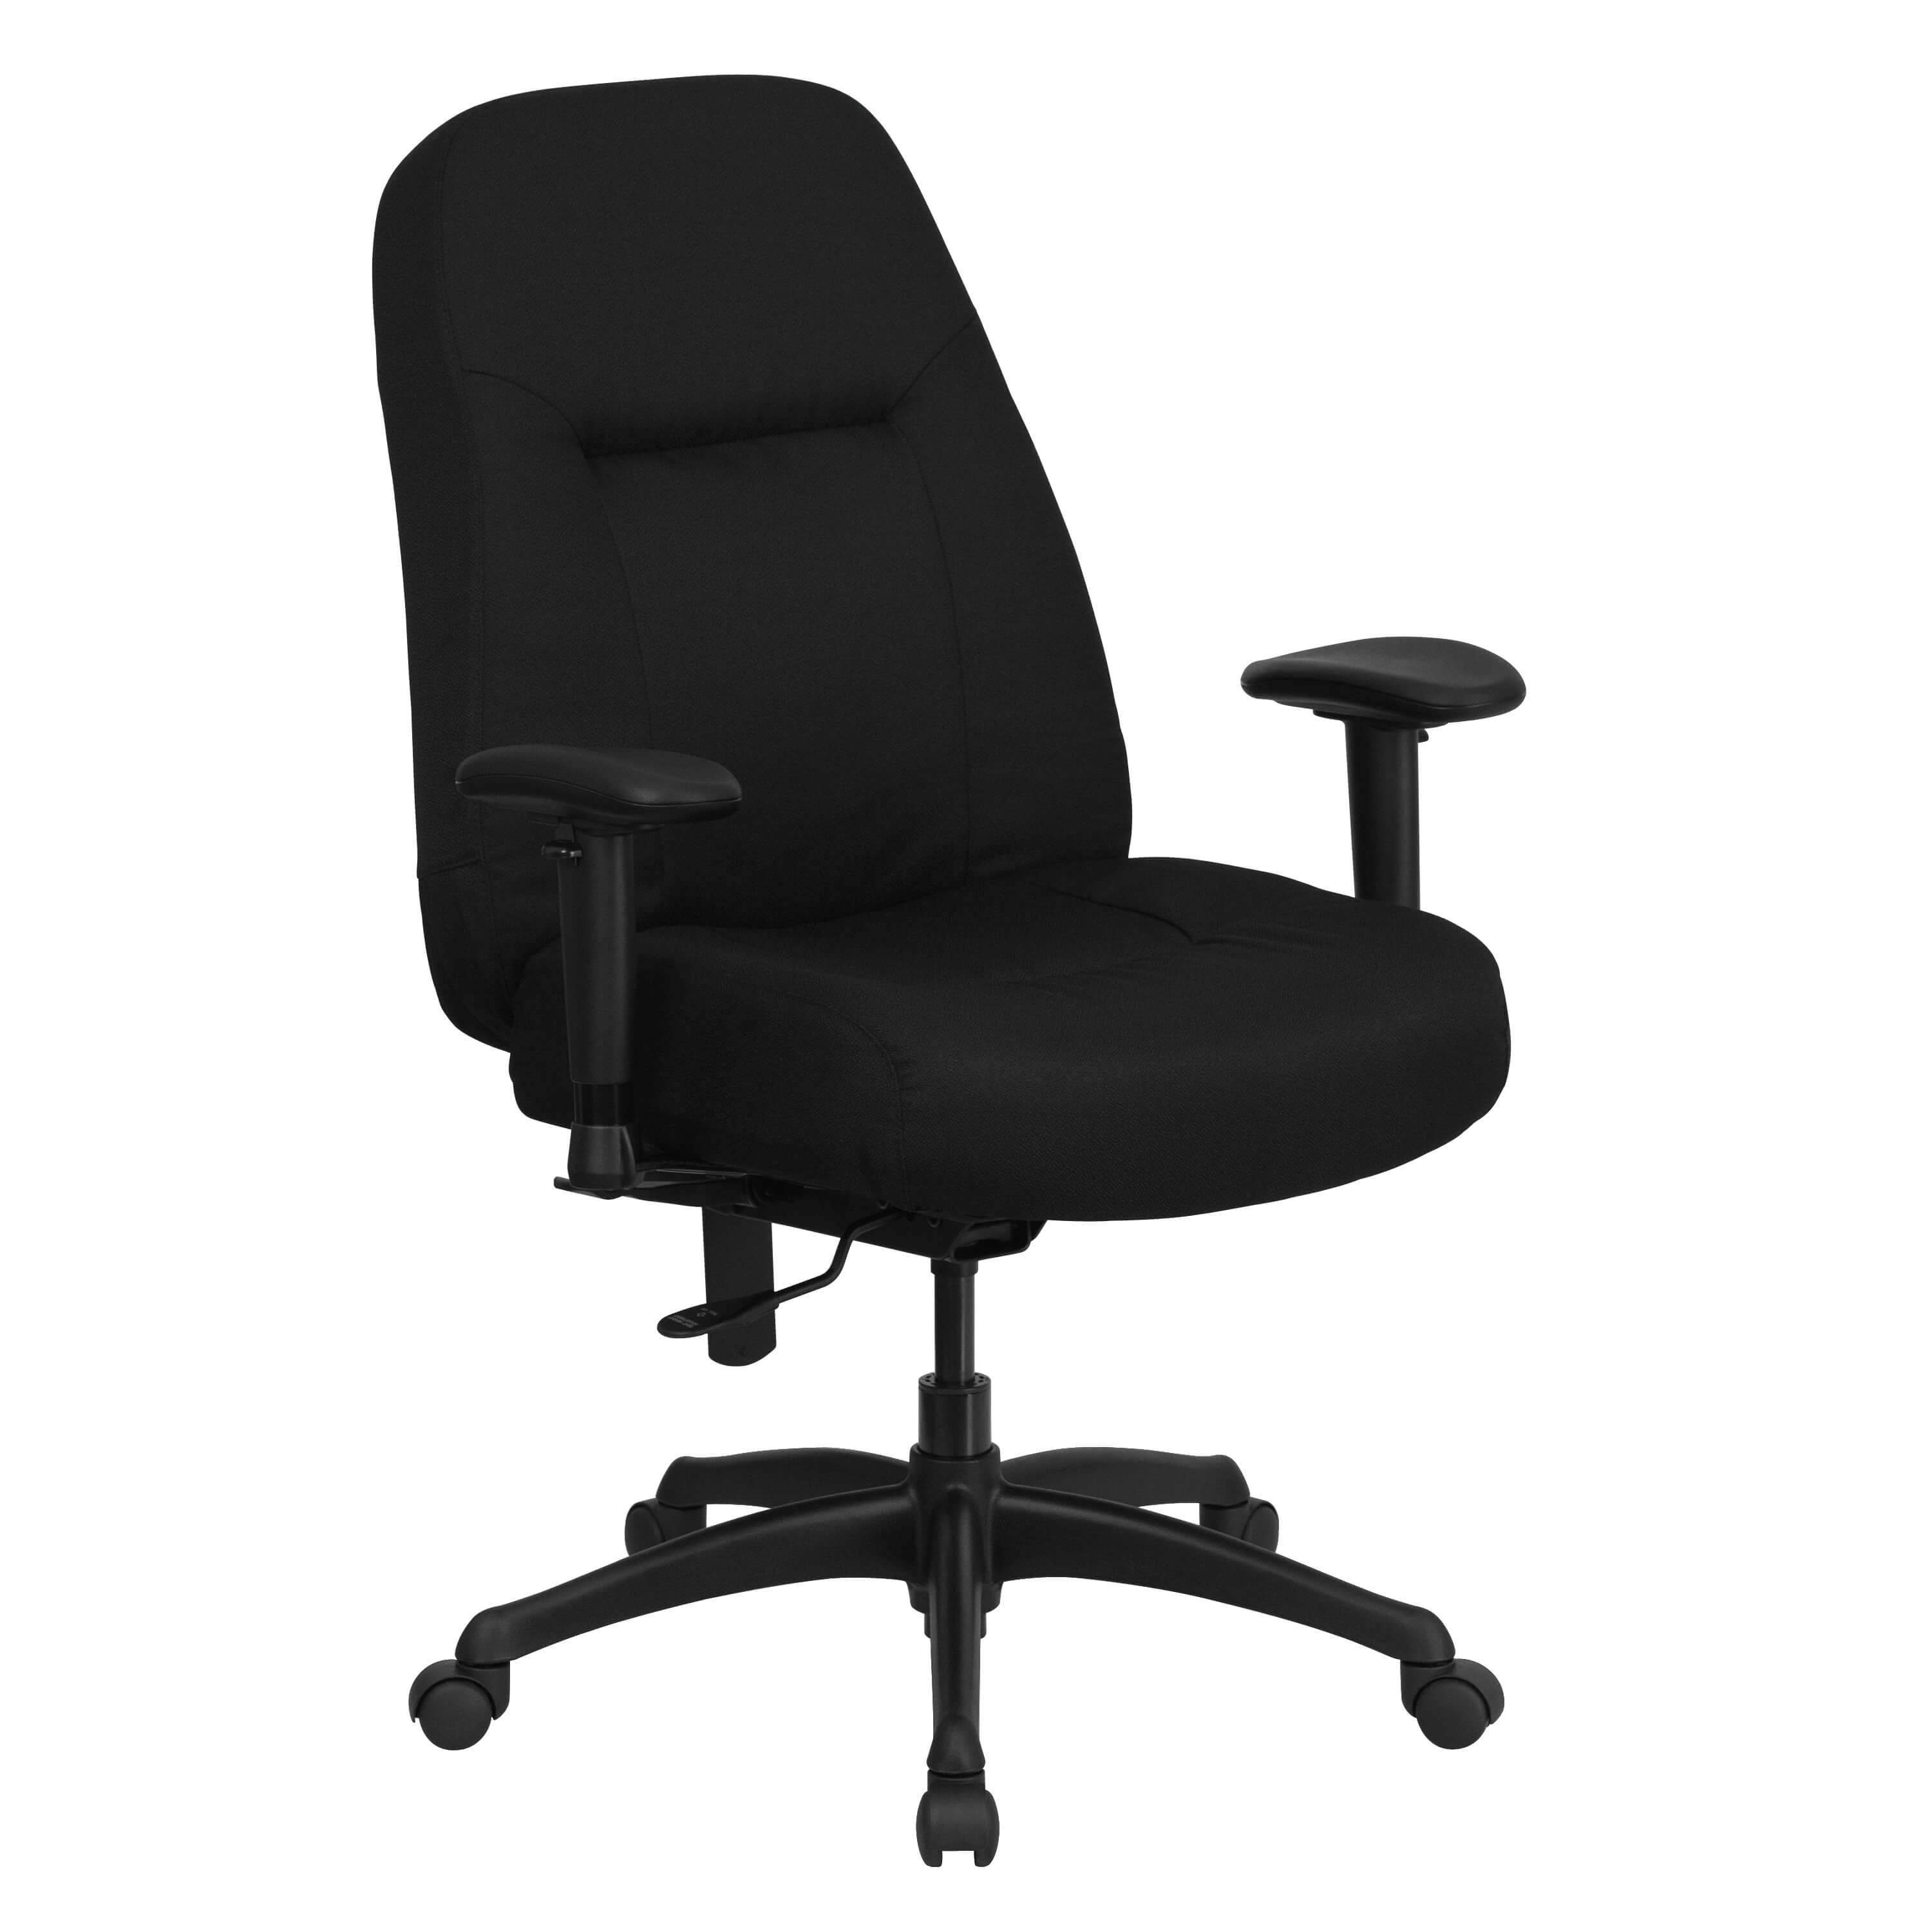 big-and-tall-office-chairs-heavy-weight-capacity-office-chair.jpg